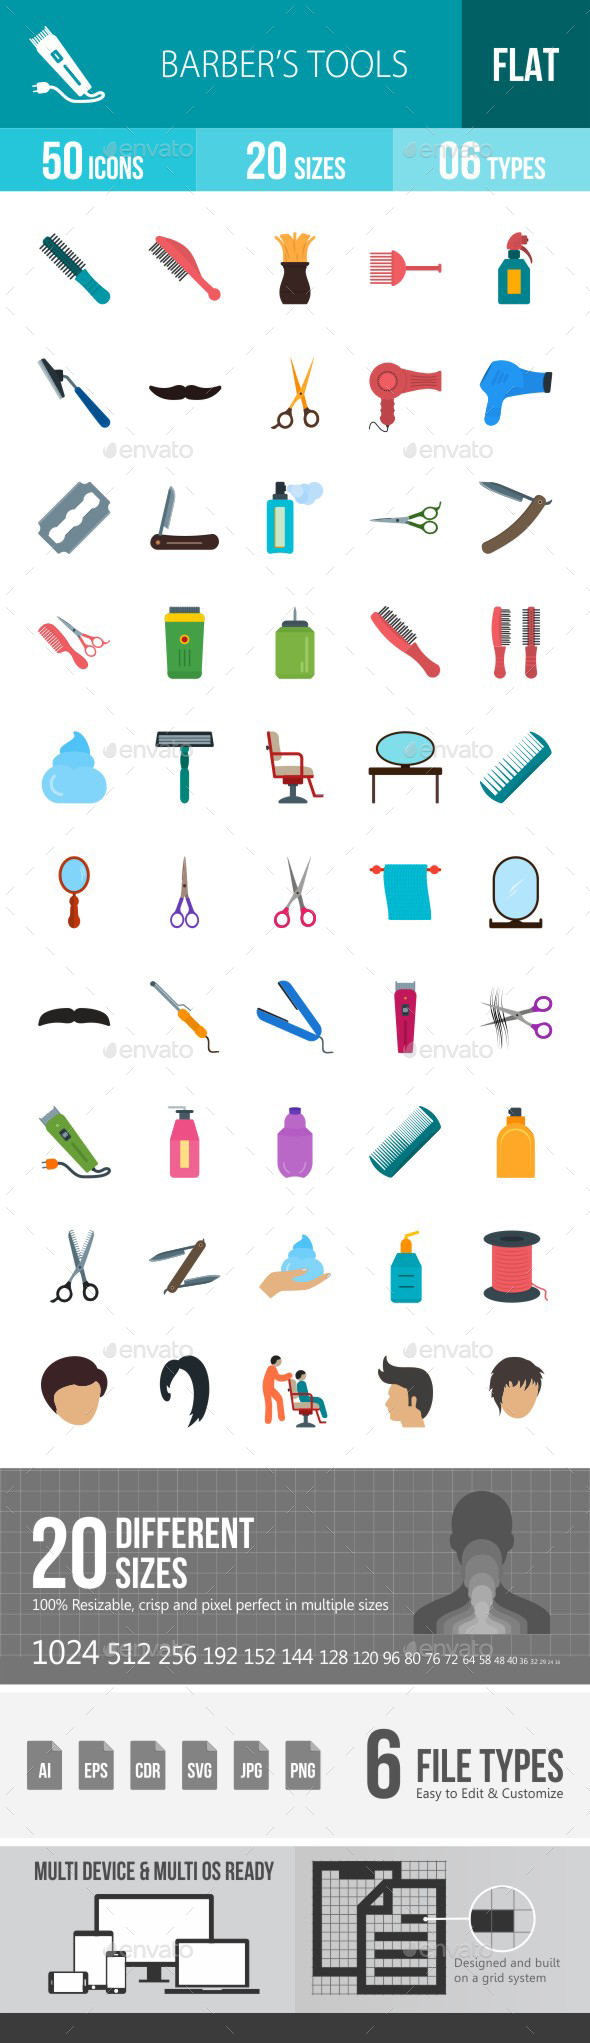 Barber's Tools Flat Multicolor Icons - Icons